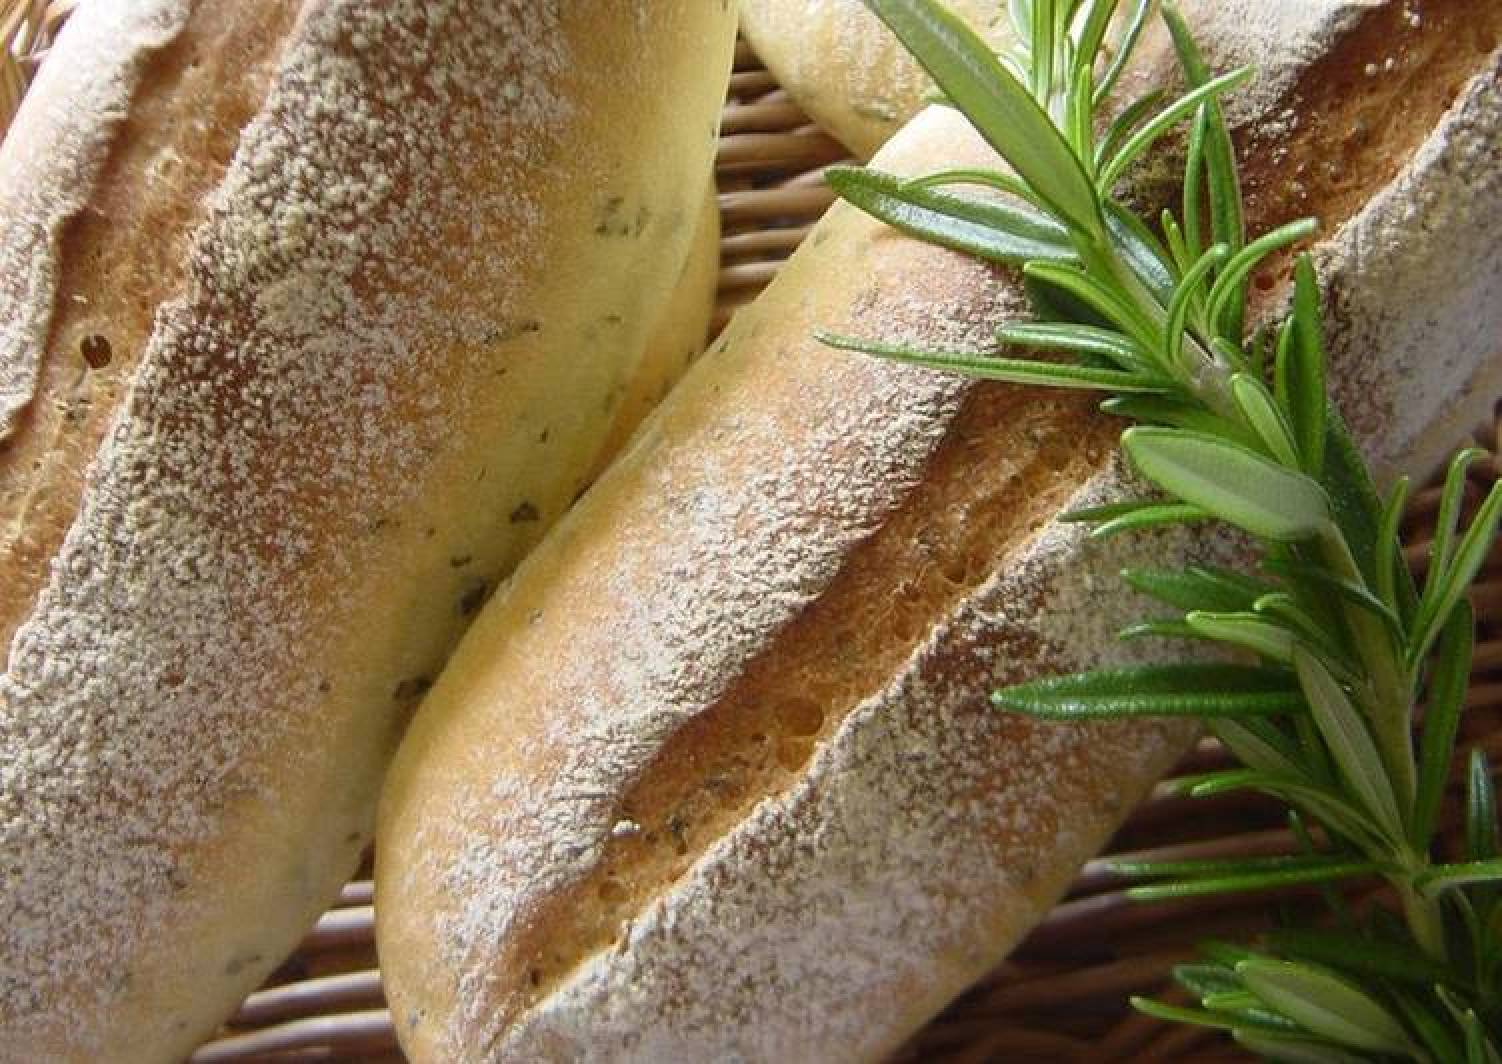 Mini Baguettes with Parsley and Lemon Using a Bread Maker